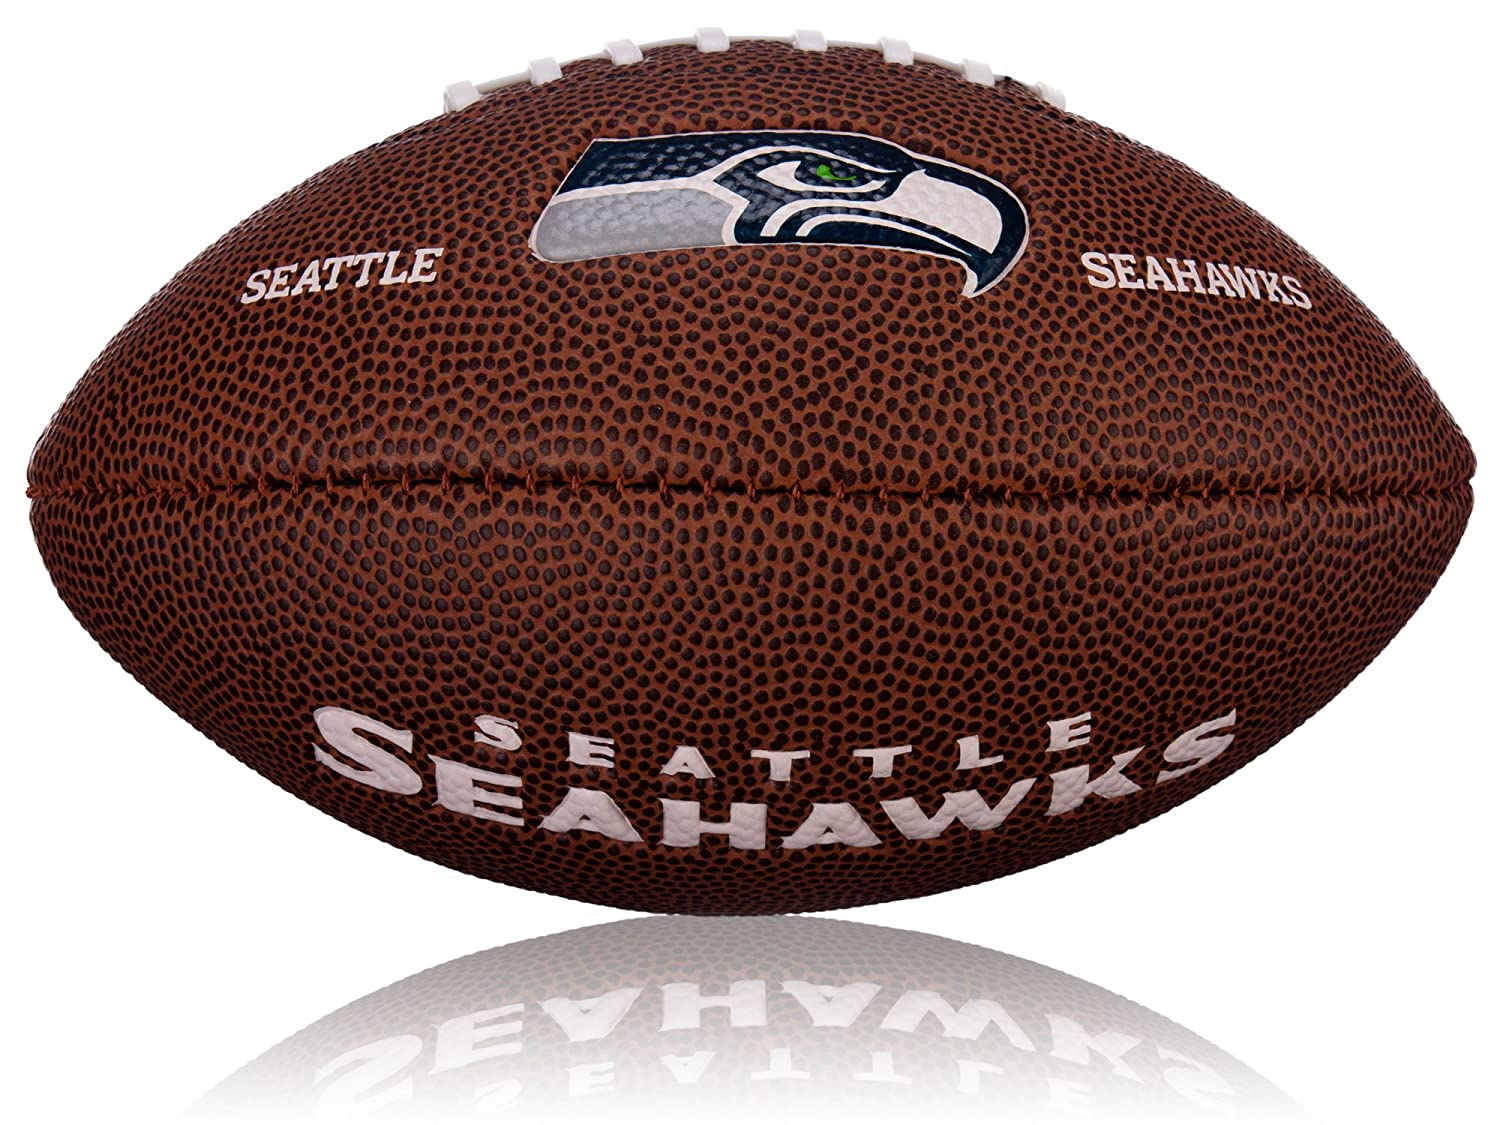 Wilson Football NFL Mini Seattle Seahawks Logo - Balón de fútbol americano (caucho), color marrón, talla 2 WL0206432042